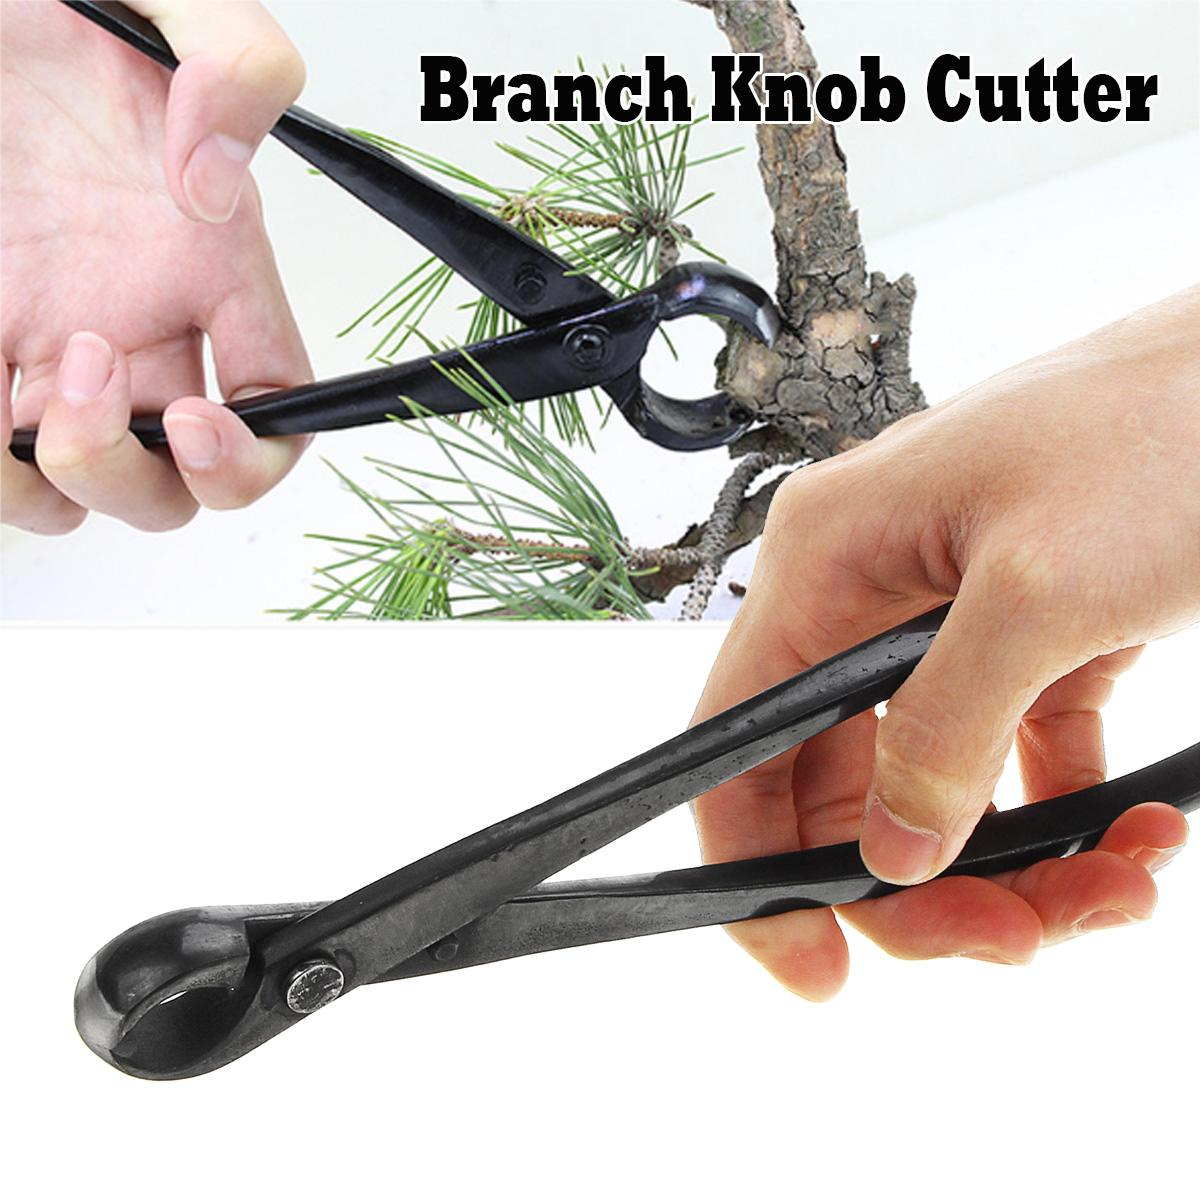 Round Edge Cutter Beginner Bonsai Tools Multi - Function As Branch Cutter And Knob Cutter 210 Mm Carbon Steel